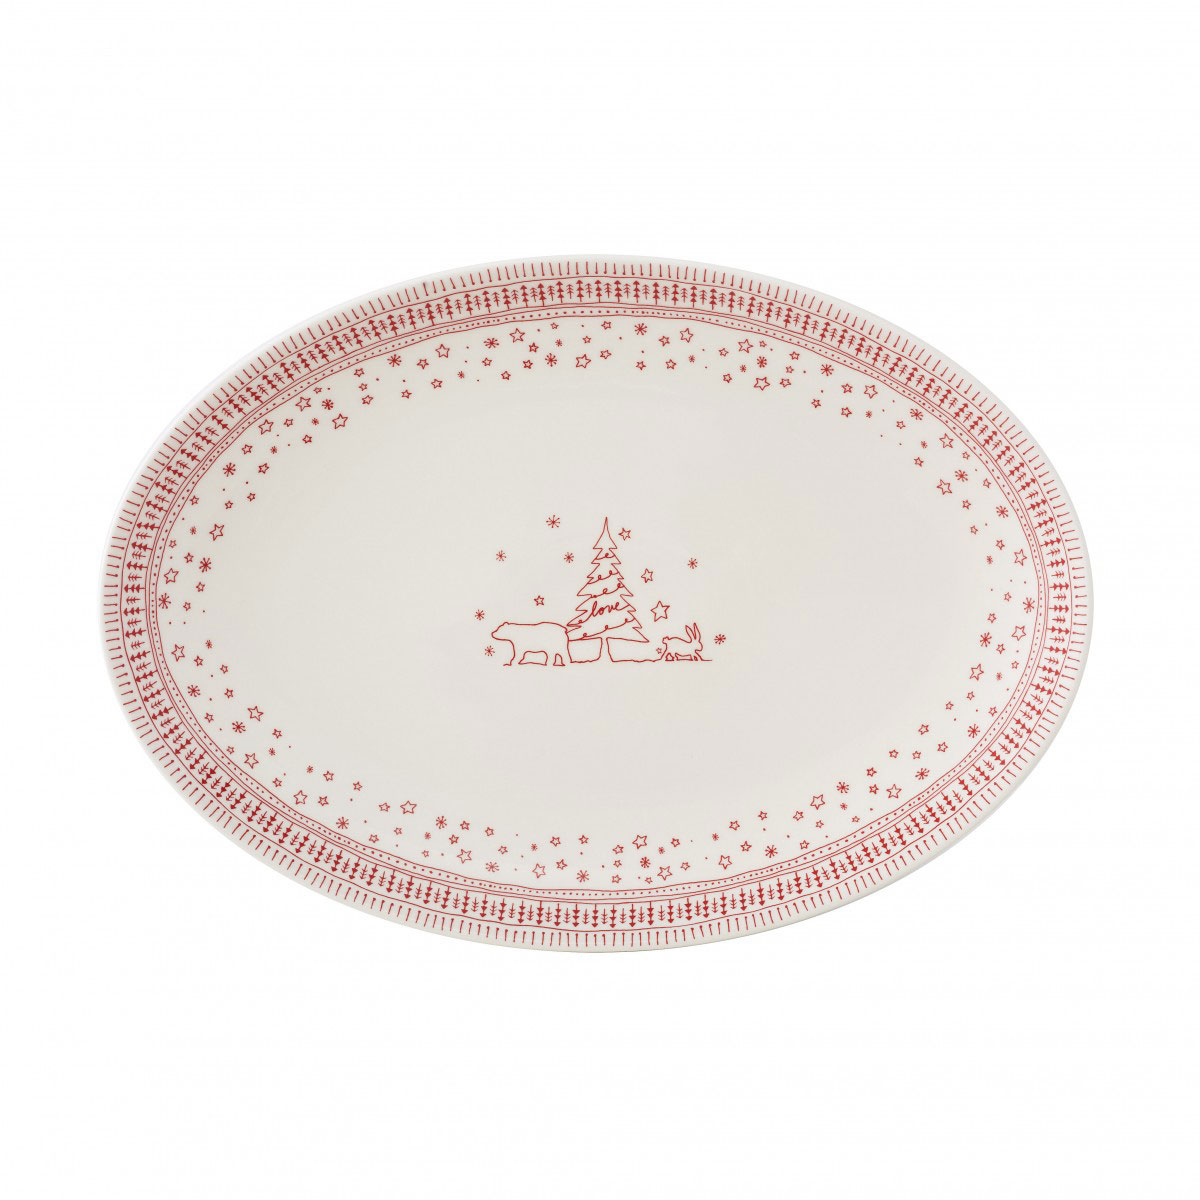 Royal Doulton, ED Ellen Degeneres Holiday China Oval Platter